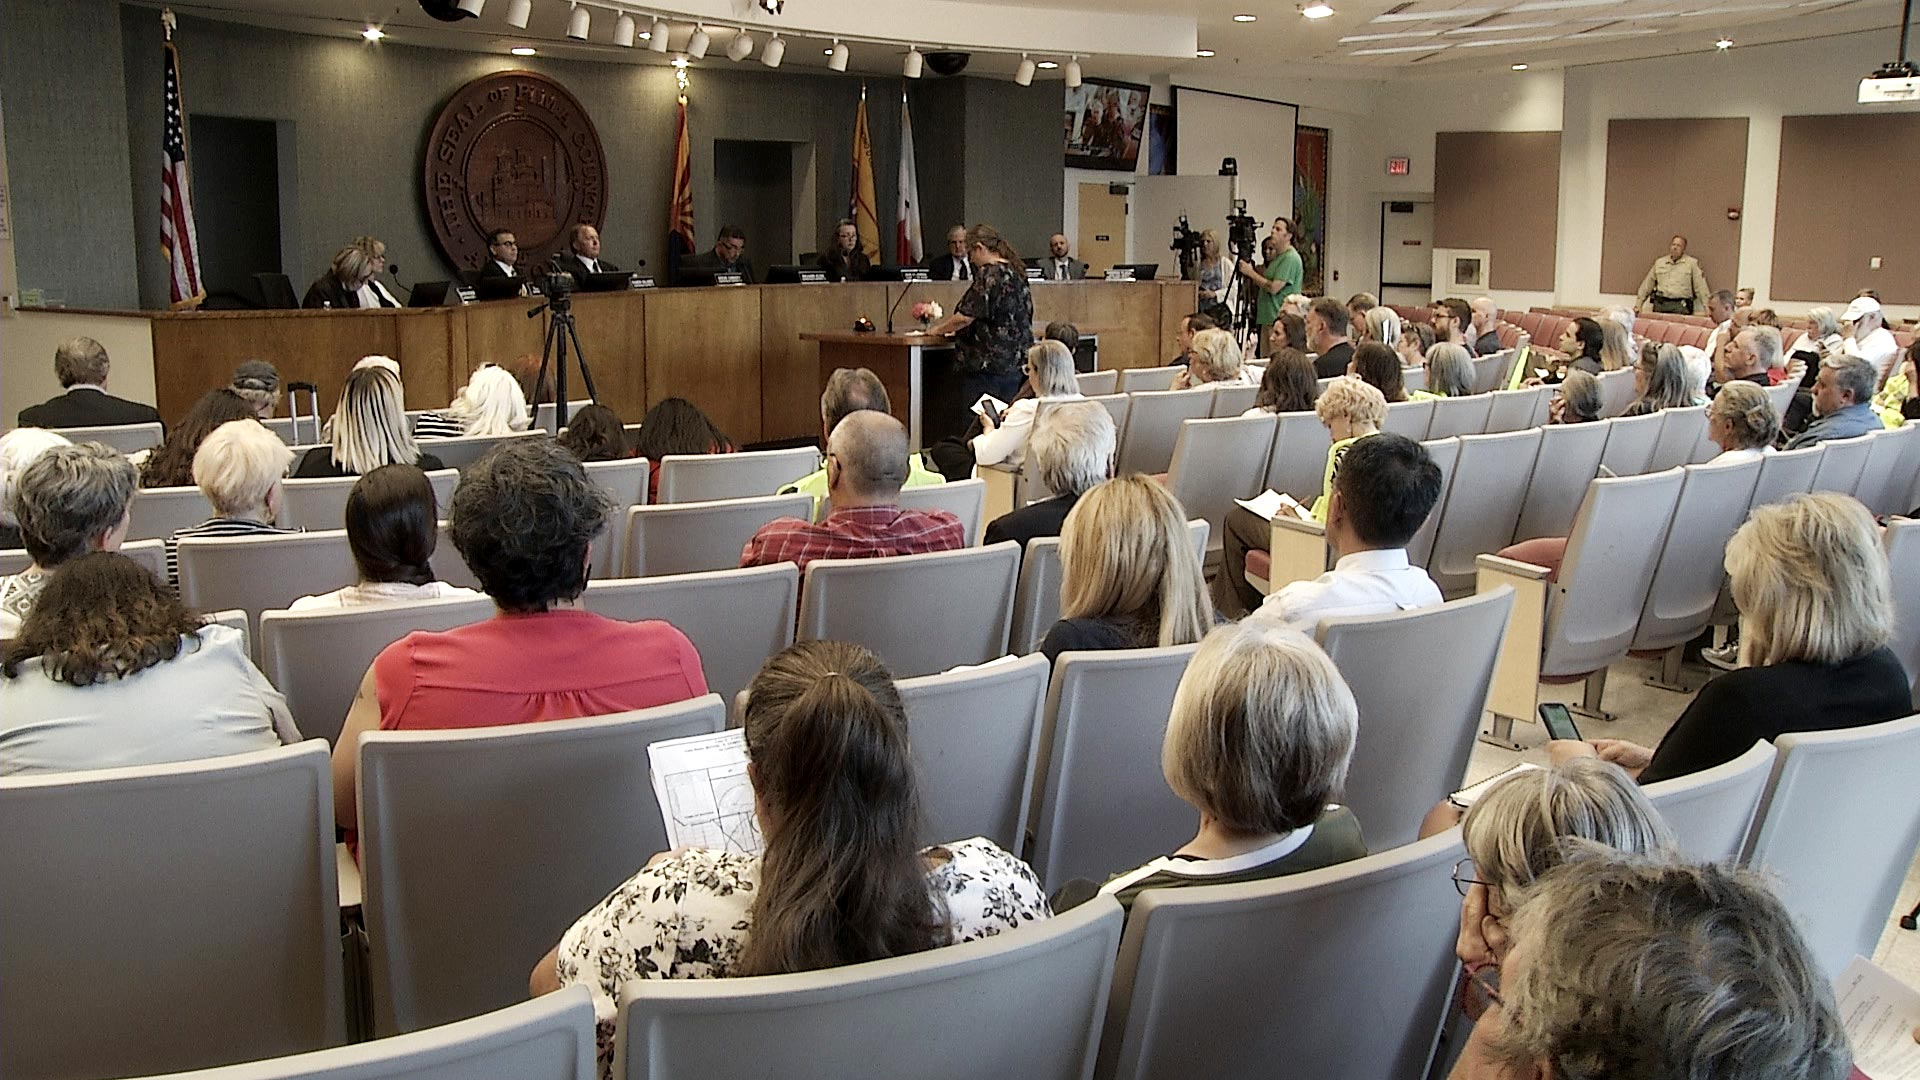 Residents observe a Pima County Board of Supervisors meeting. May 2019.